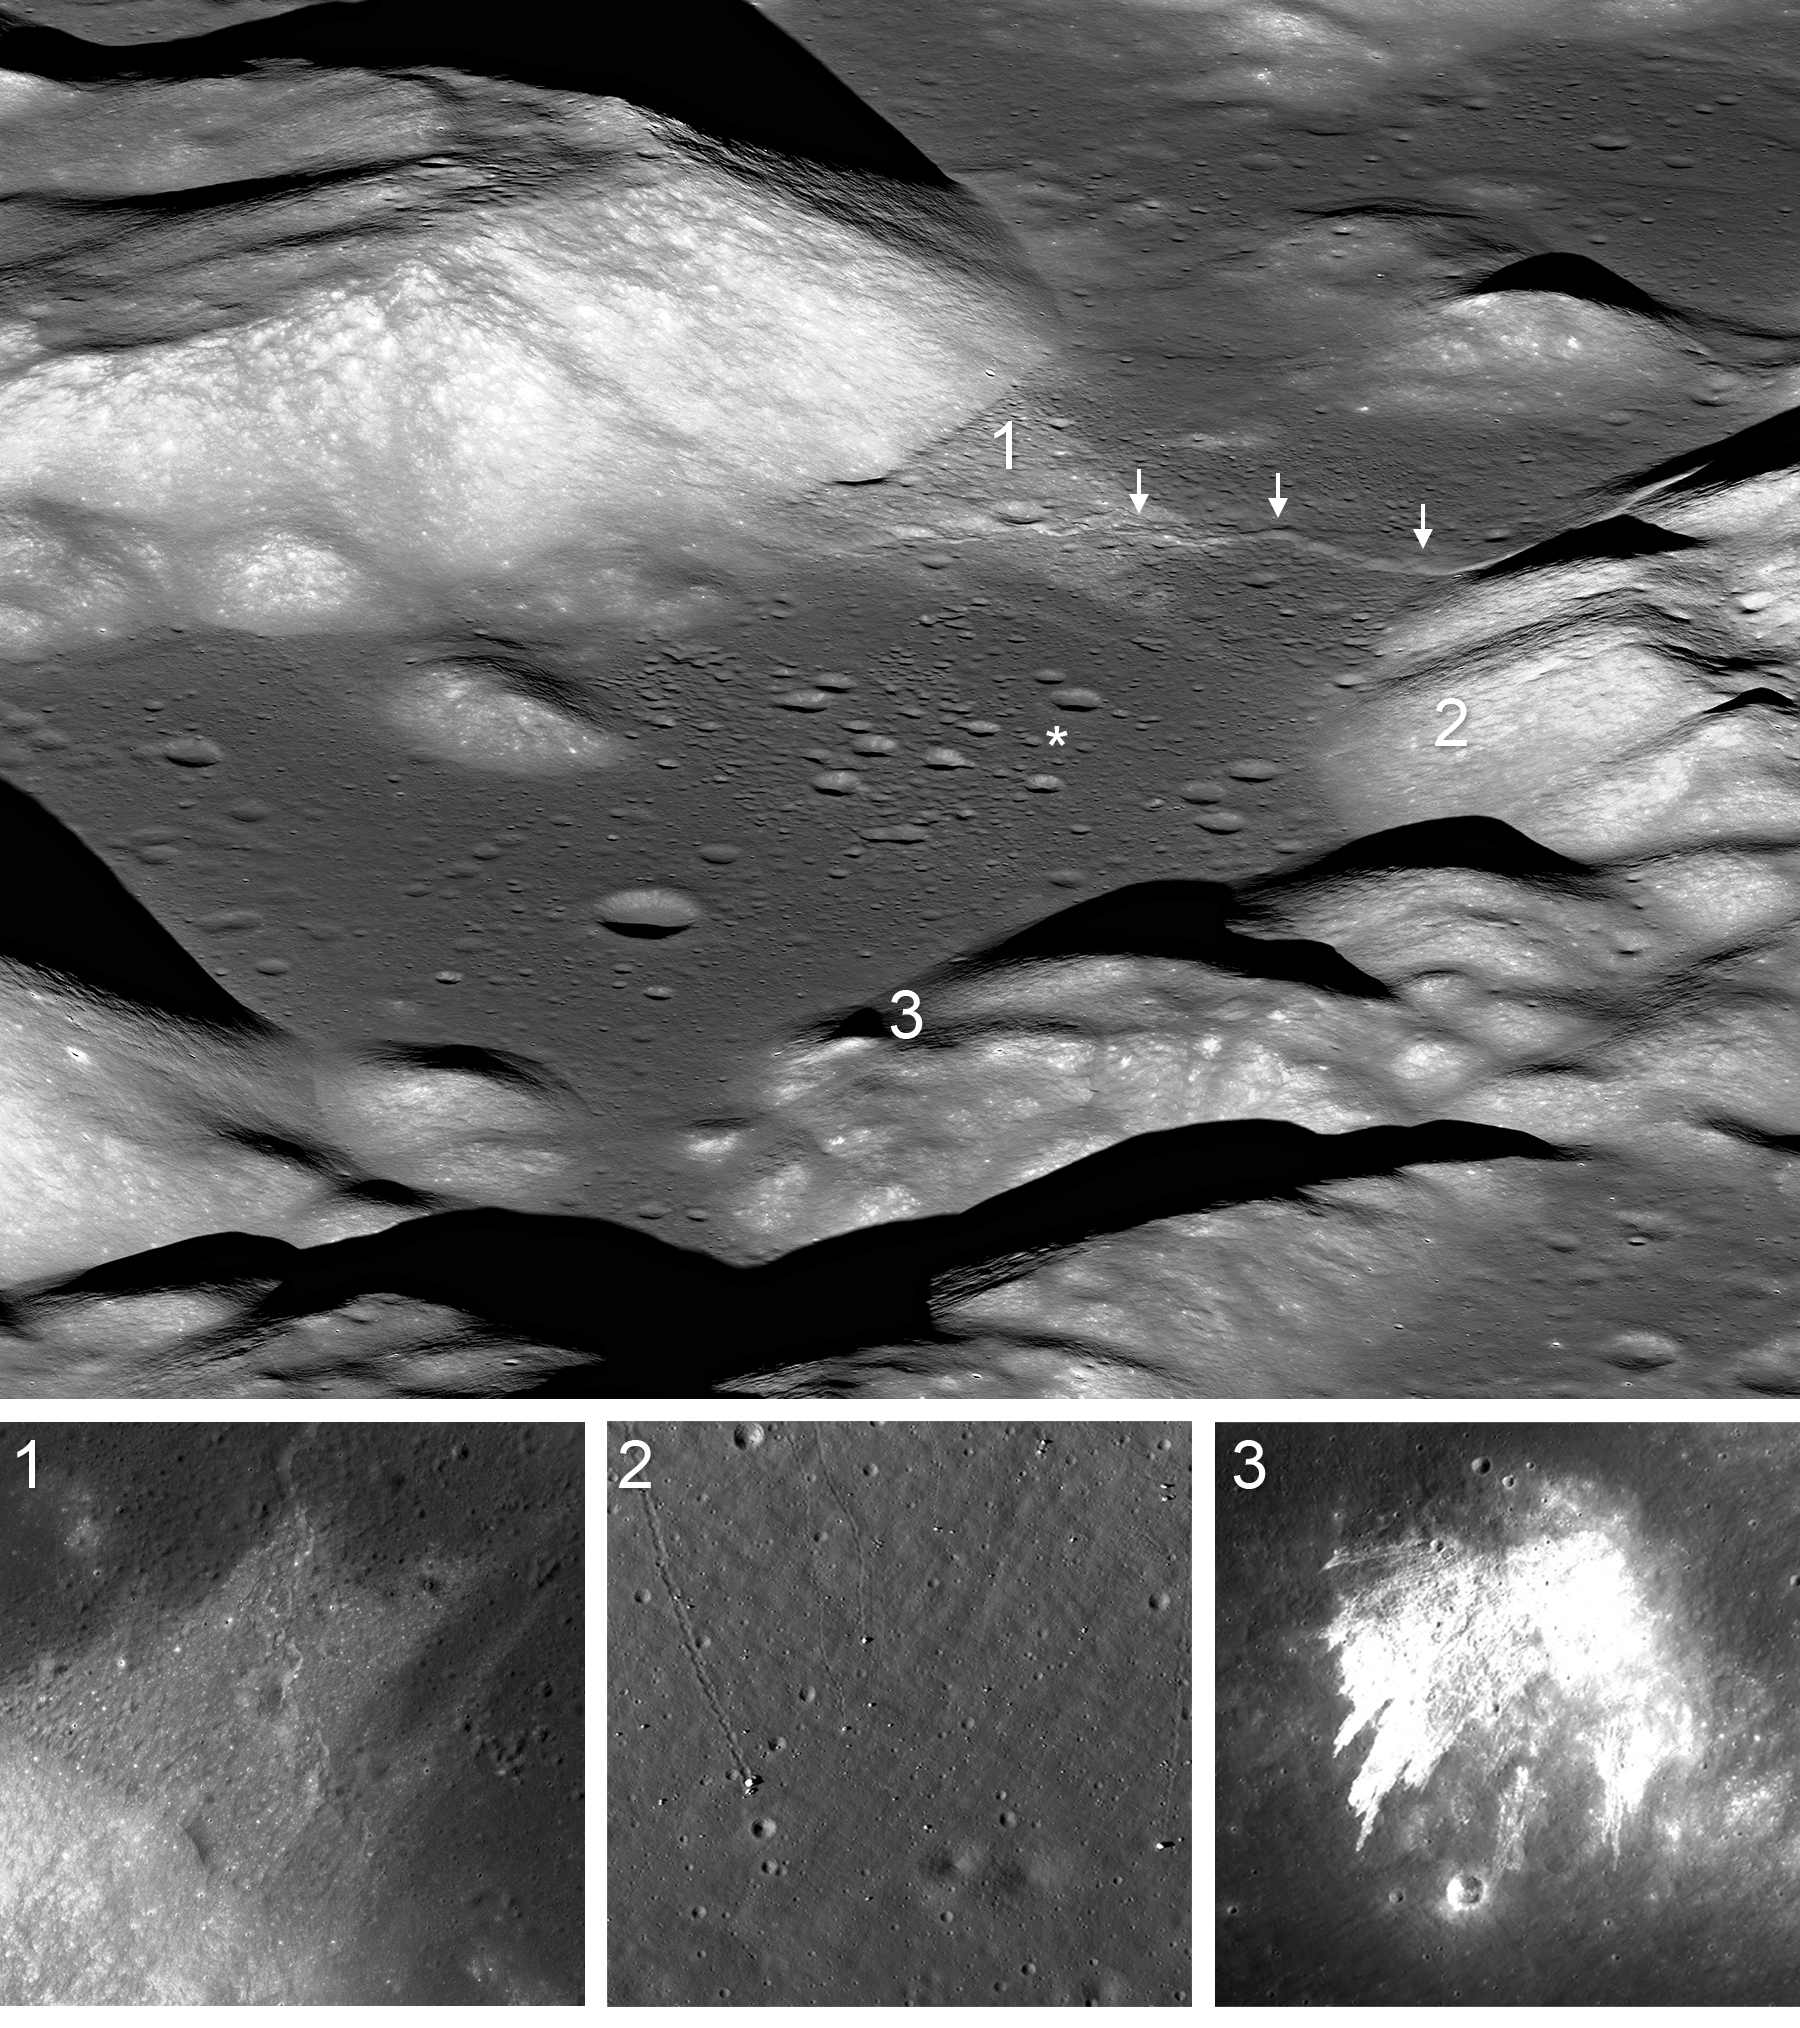 Space stunner: Moon is shrinking, shocking study reveals